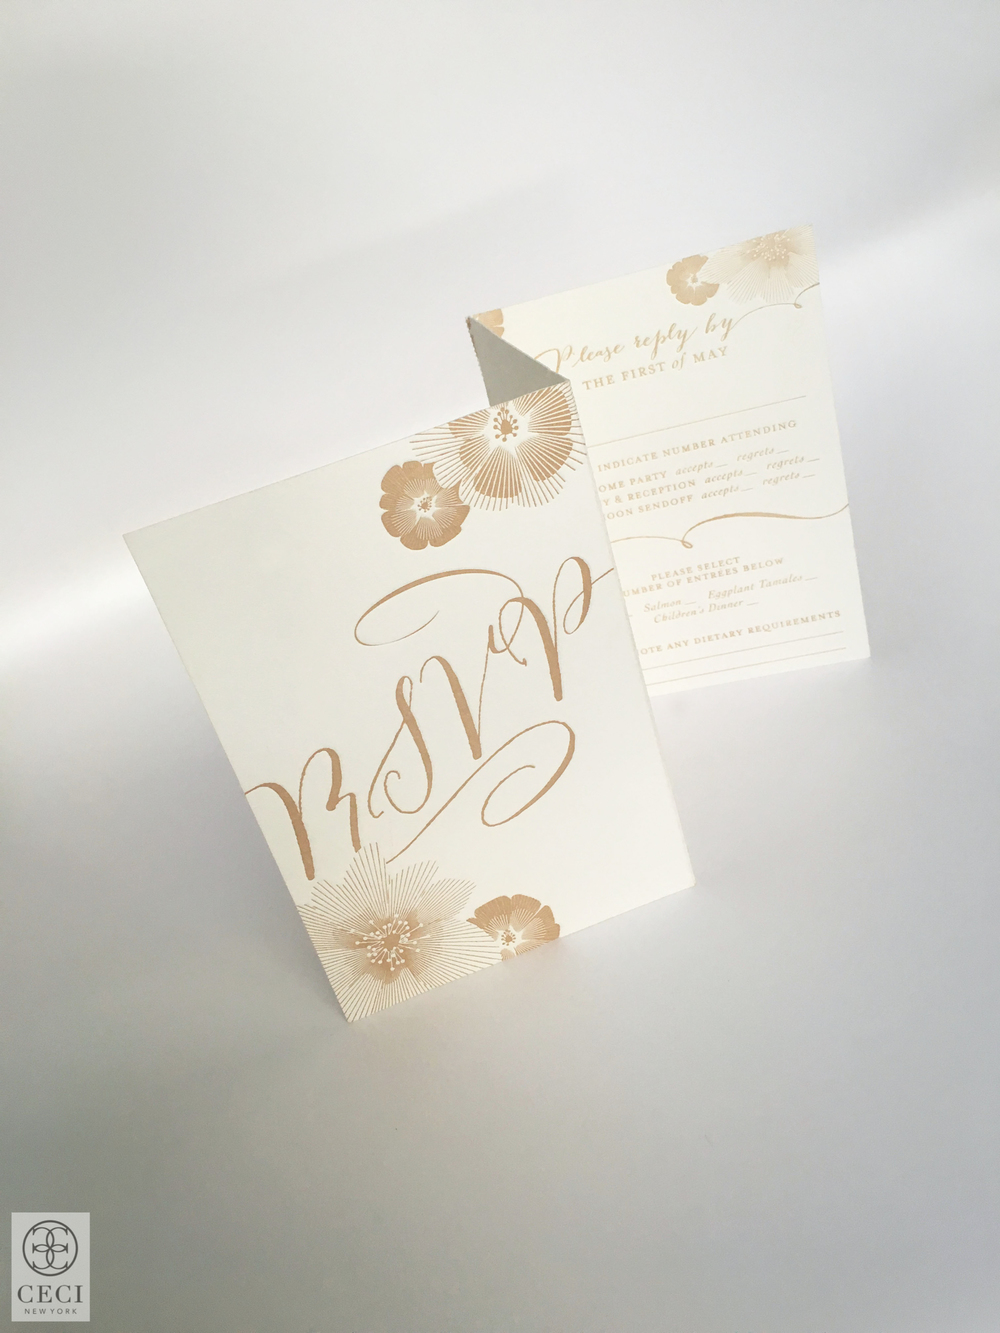 Ceci_New_York_Ceci_Style_Ceci_Johnson_Luxury_Lifestyle_Arizona_Wedding_Watercolor_Inspiration_Design_Custom_Couture_Personalized_Invitations_-11.jpg